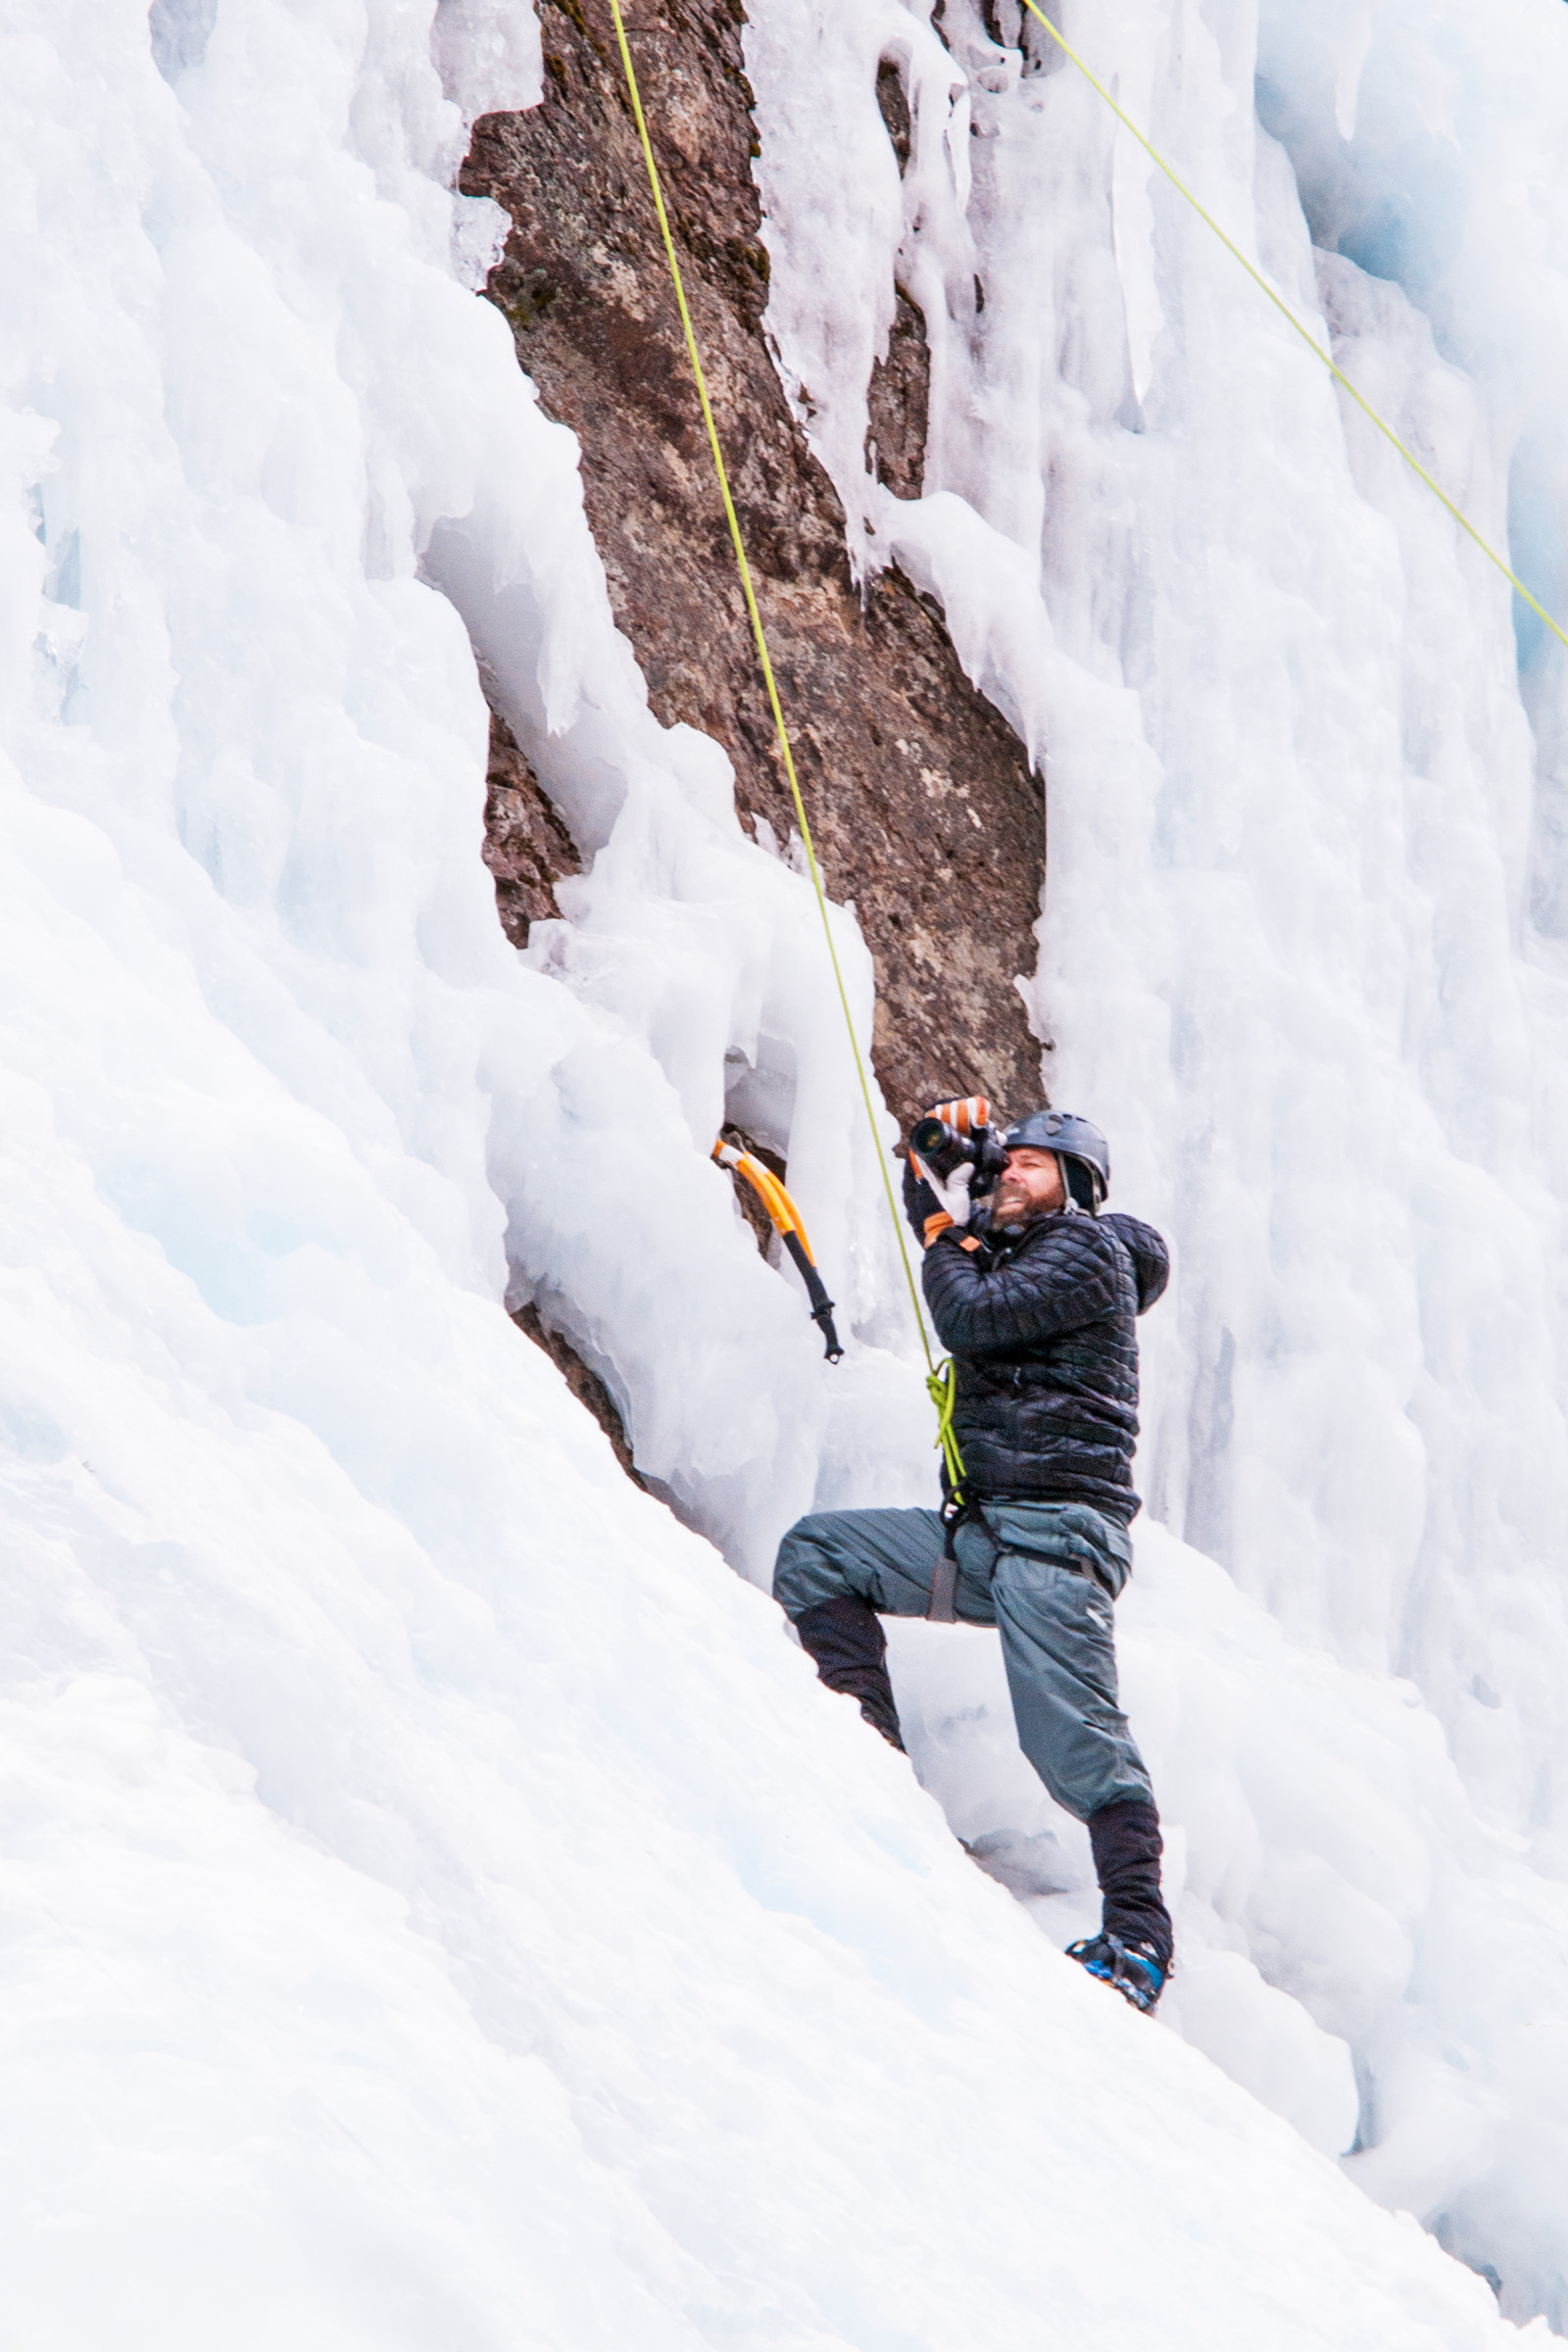 On assignment with  First Descents  in Ouray, Colorado